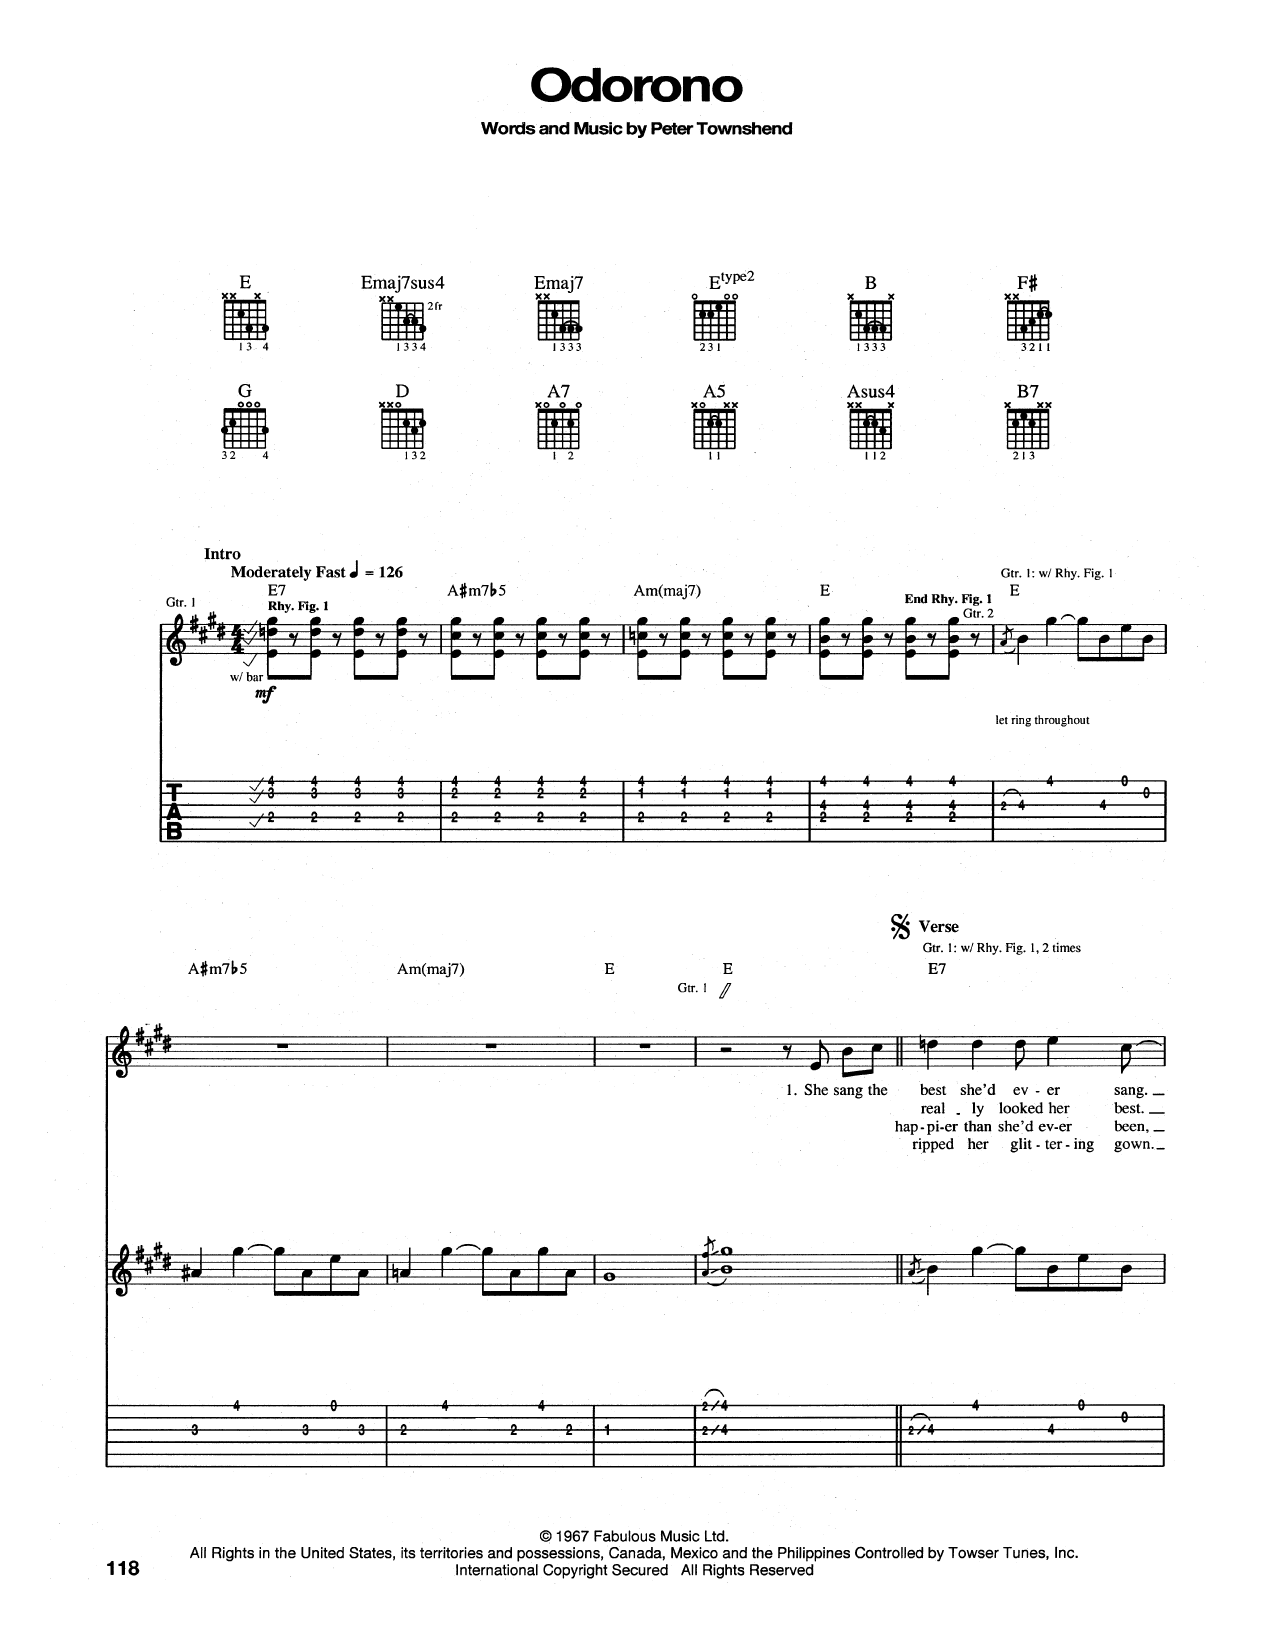 Odorono Sheet Music